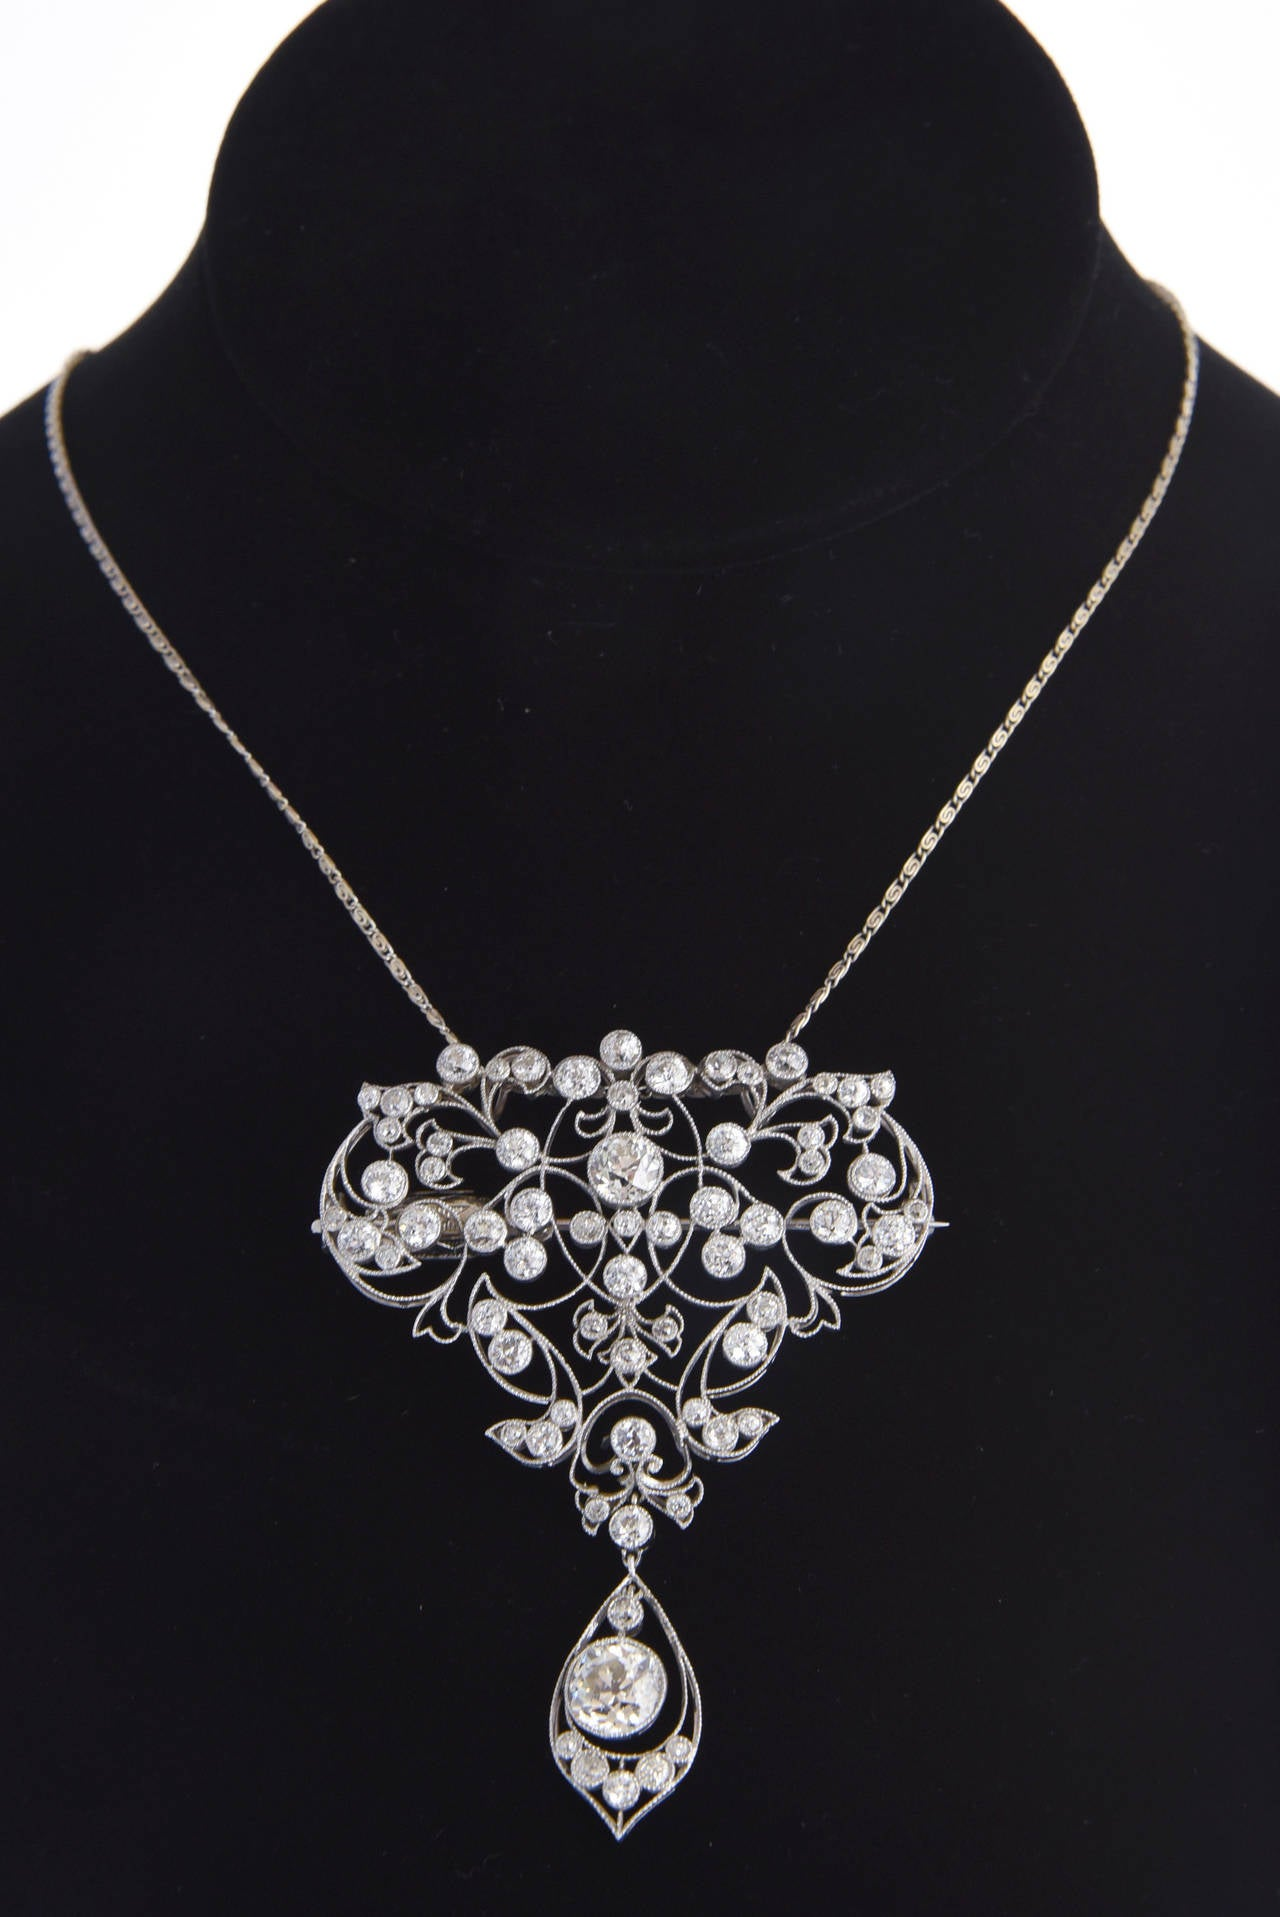 Belle Époque Diamond Platinum Floral Brooch Pendant For Sale 3